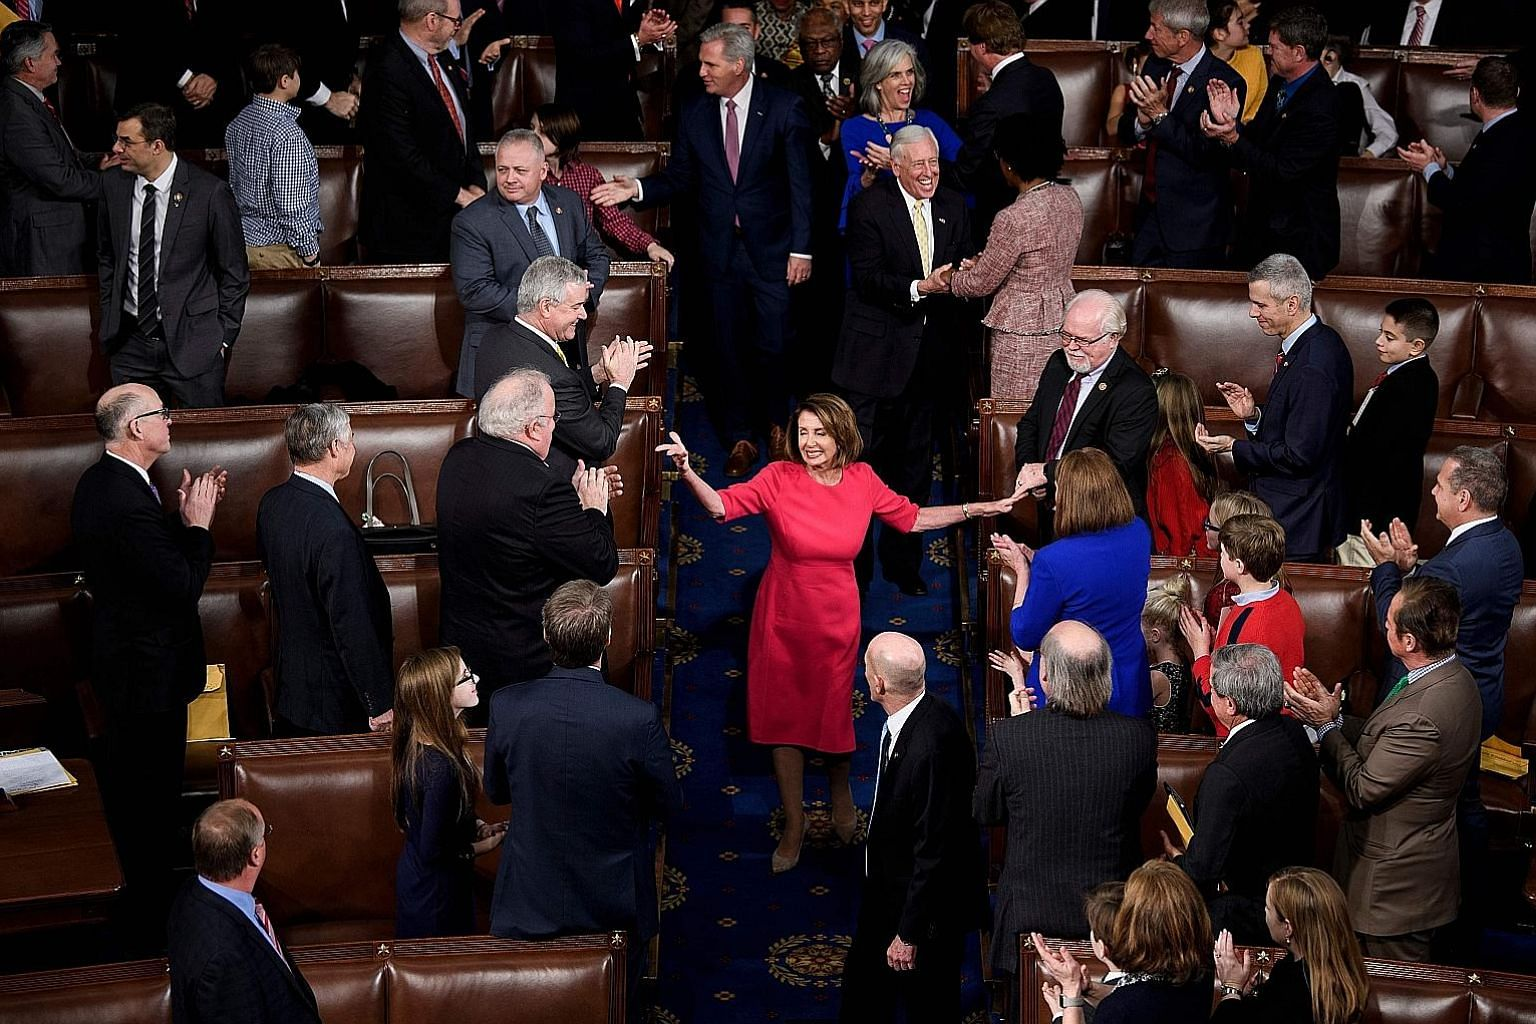 Ms Nancy Pelosi being applauded on Thursday after her election as Speaker of the House in the House of Representatives during the opening session of the 116th Congress.